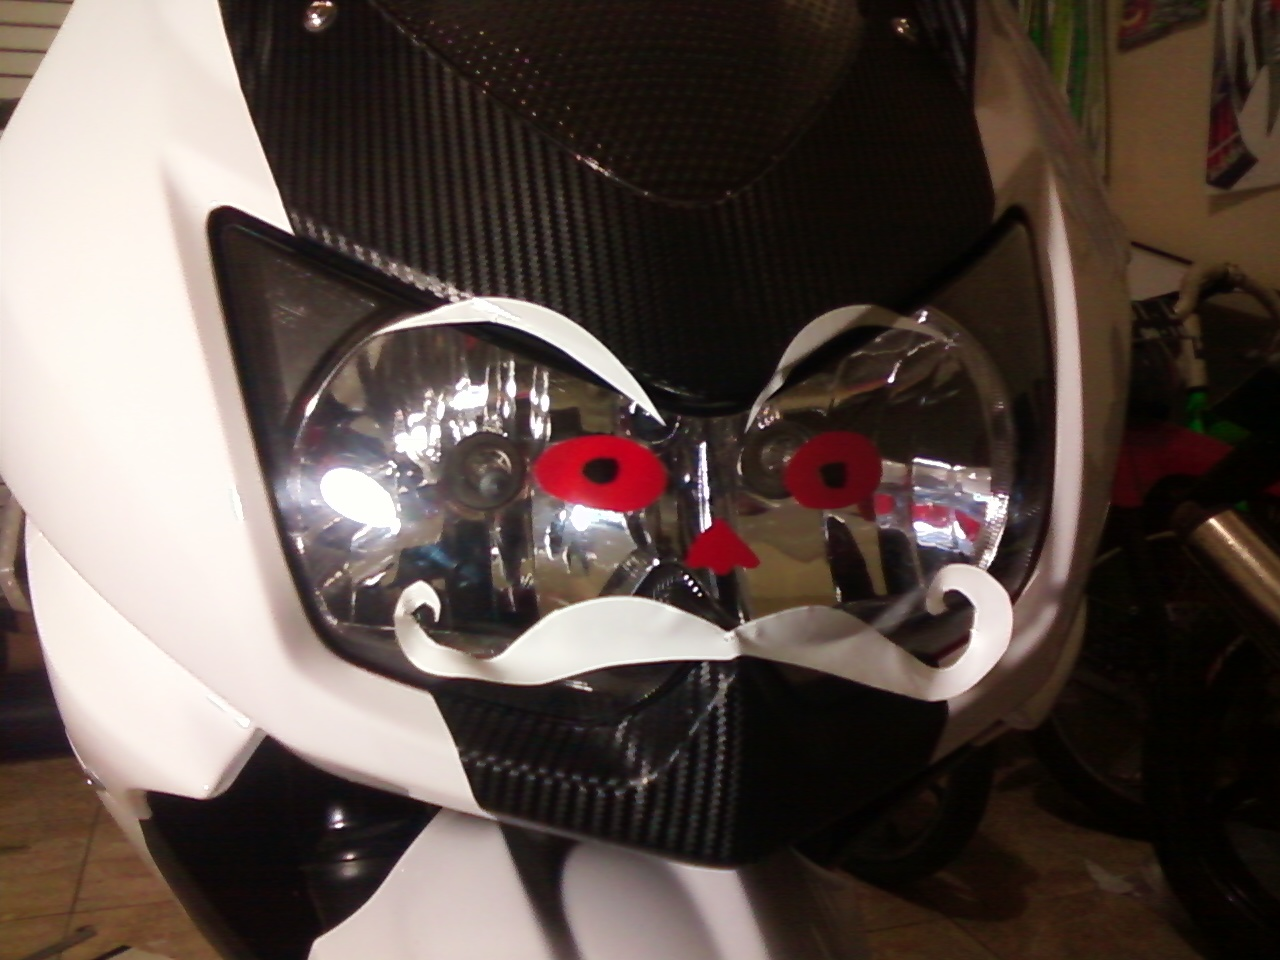 Ninja 250 Putih Cutting Sticker http://yosefcuttingsticker.blogspot.com/2012/07/custom-lampu-depan-ninja-250-creasi.html